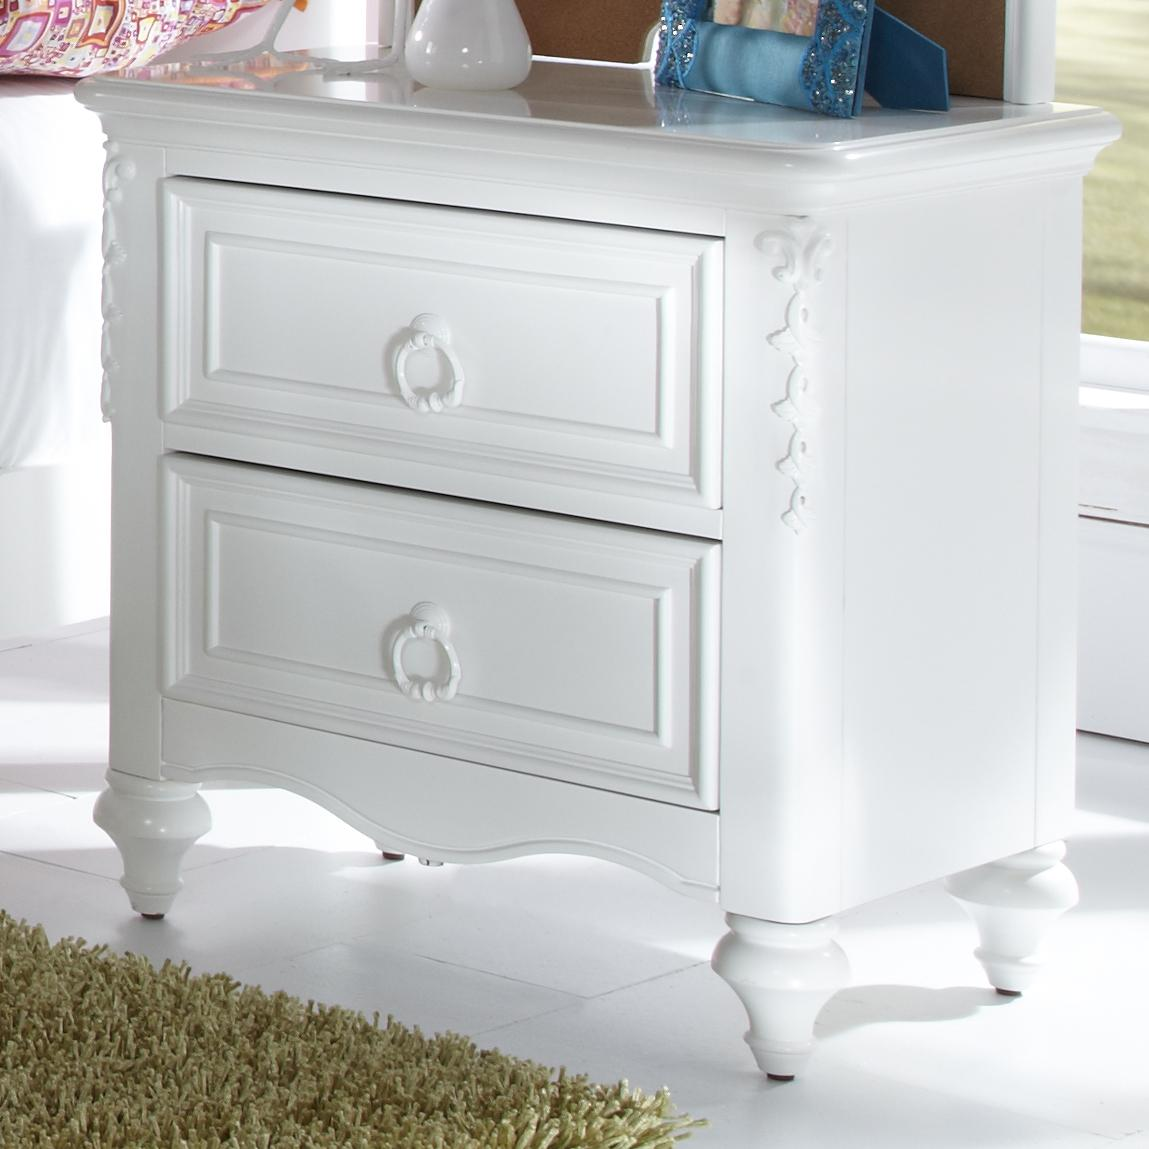 Sarasota 2 drawer nightstand with hidden storage compartment morris home night stands Morris home furniture outlet